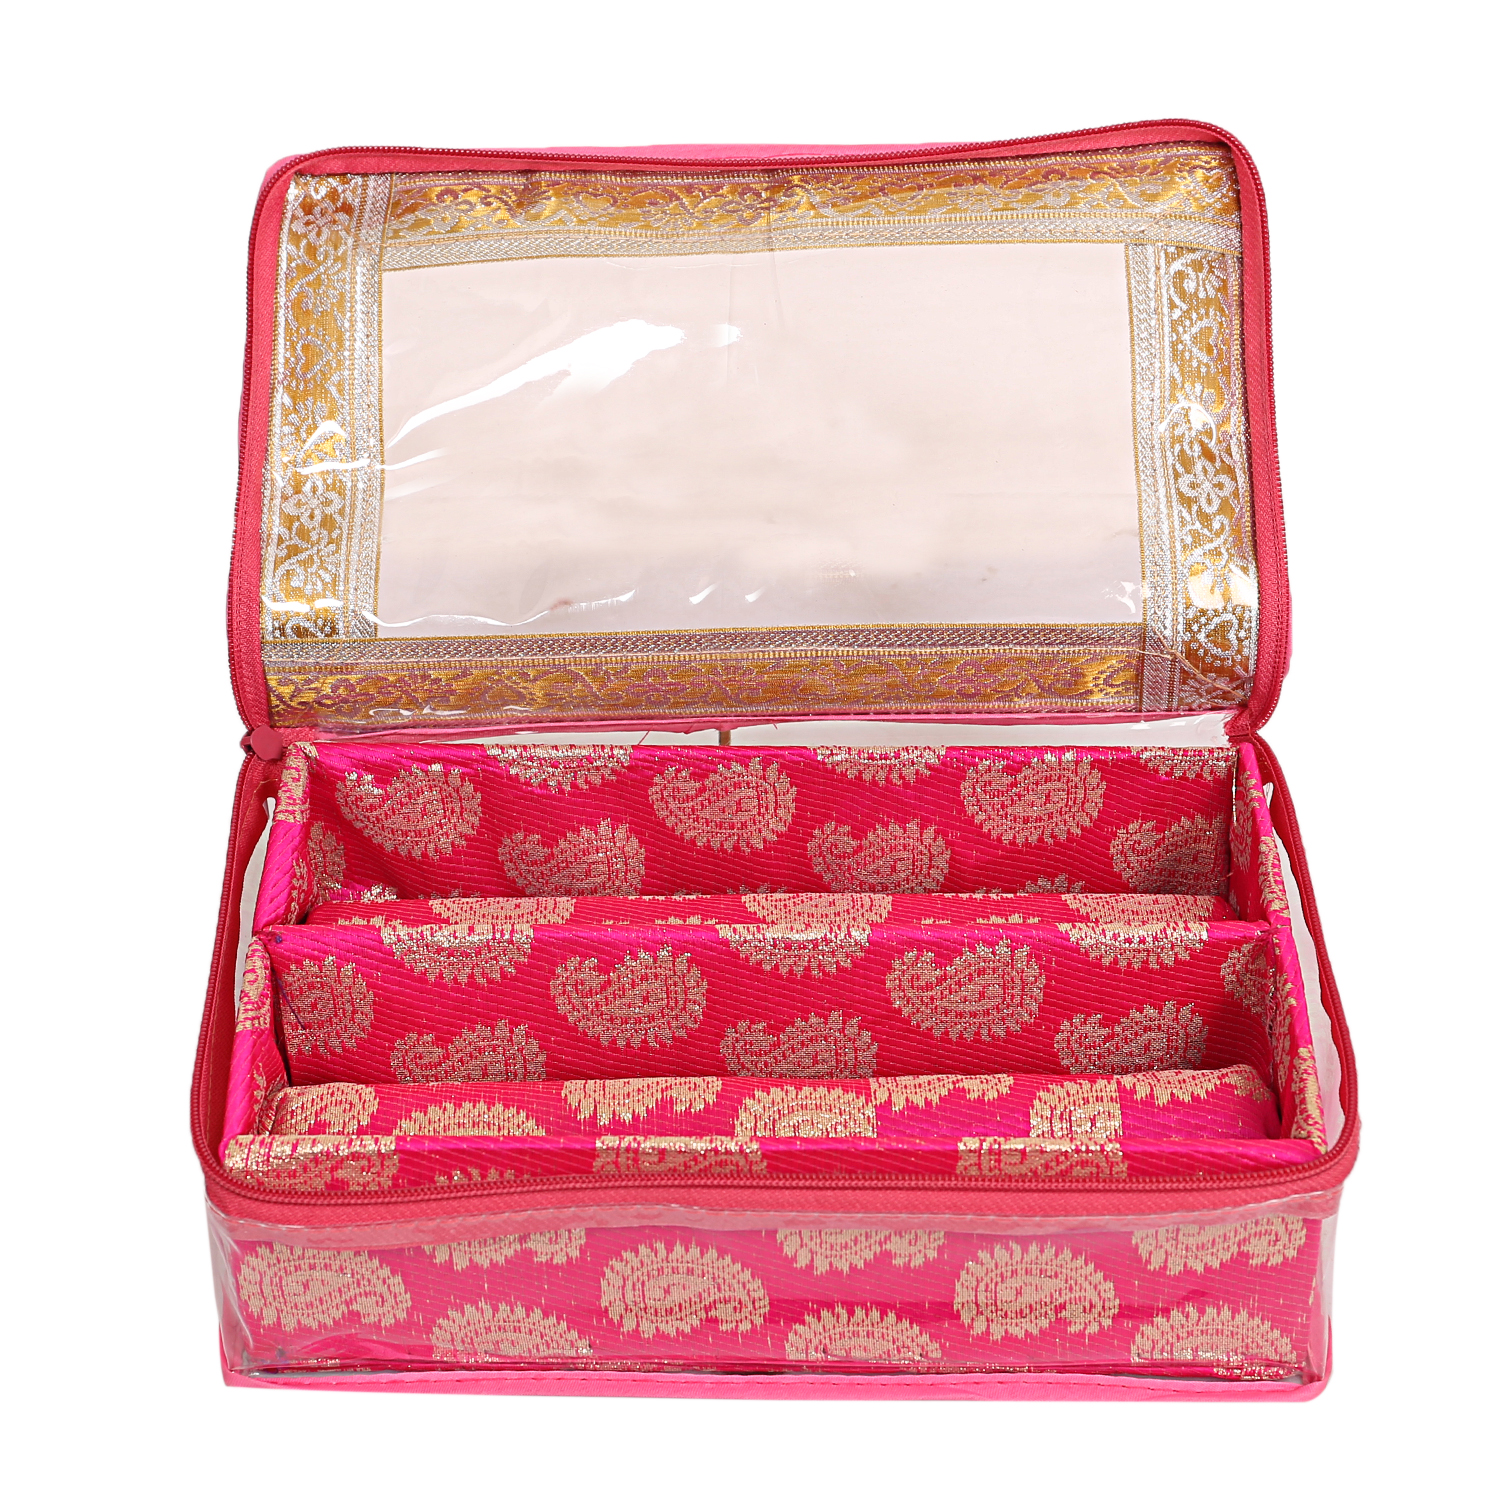 Kuber Industries Wooden 2 Rod Bangle Box (Pink) Set of 2 Pcs